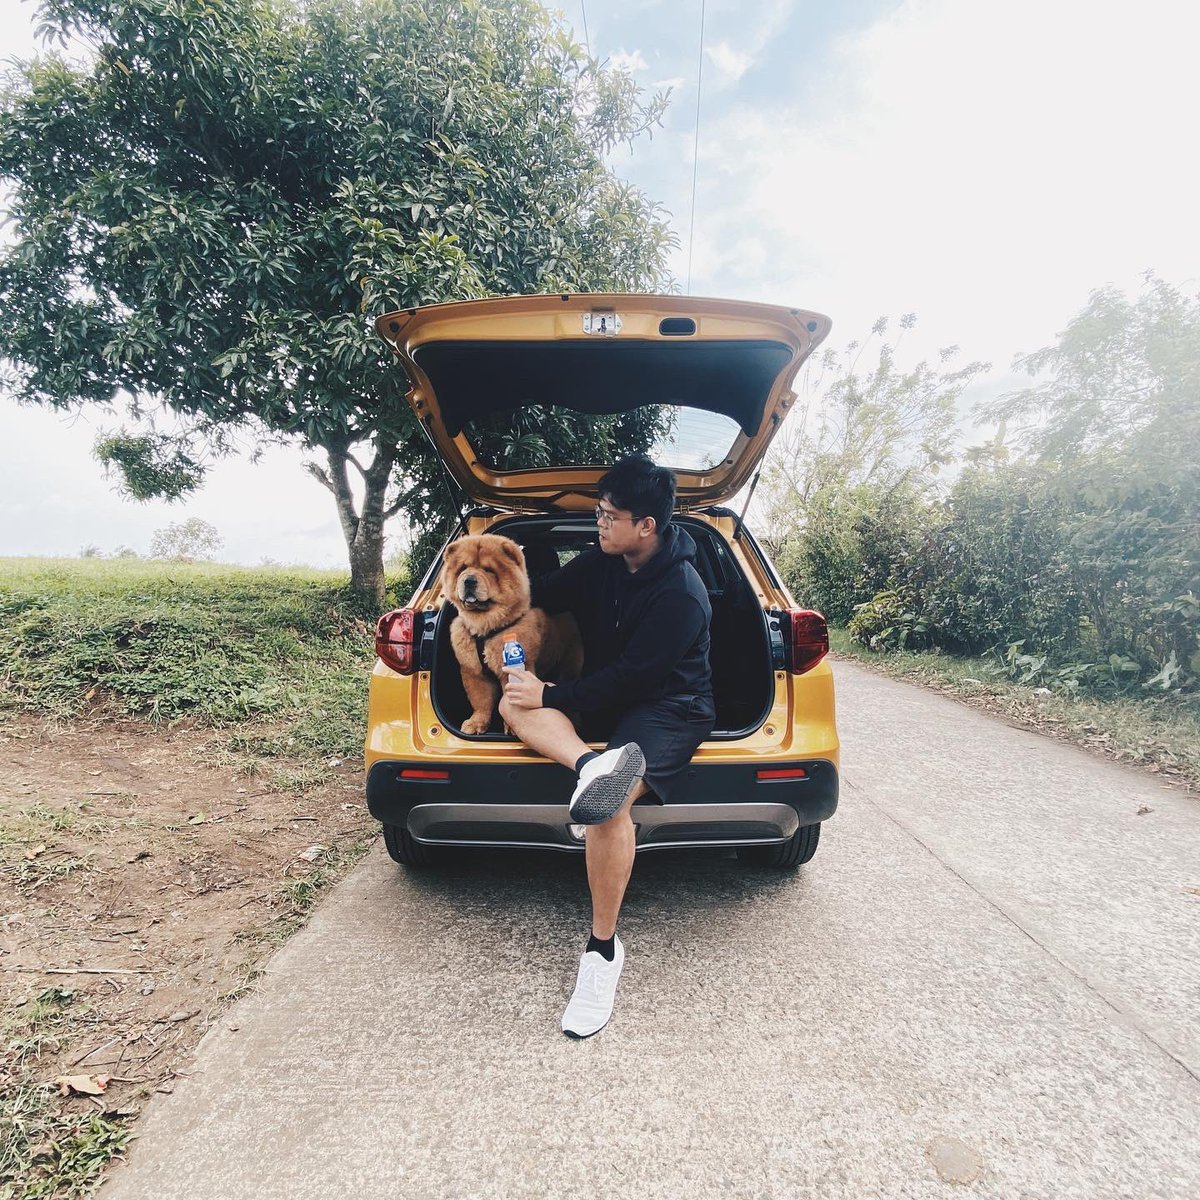 Afternoon walks with Bacon is always an enjoyable activity but it can sometimes be tiring and dehydrating. Hydration is a must so I always have #GatoradeION with me whenever we go out.   #OurActiveHydration @GatoradeIon @GatoradePH